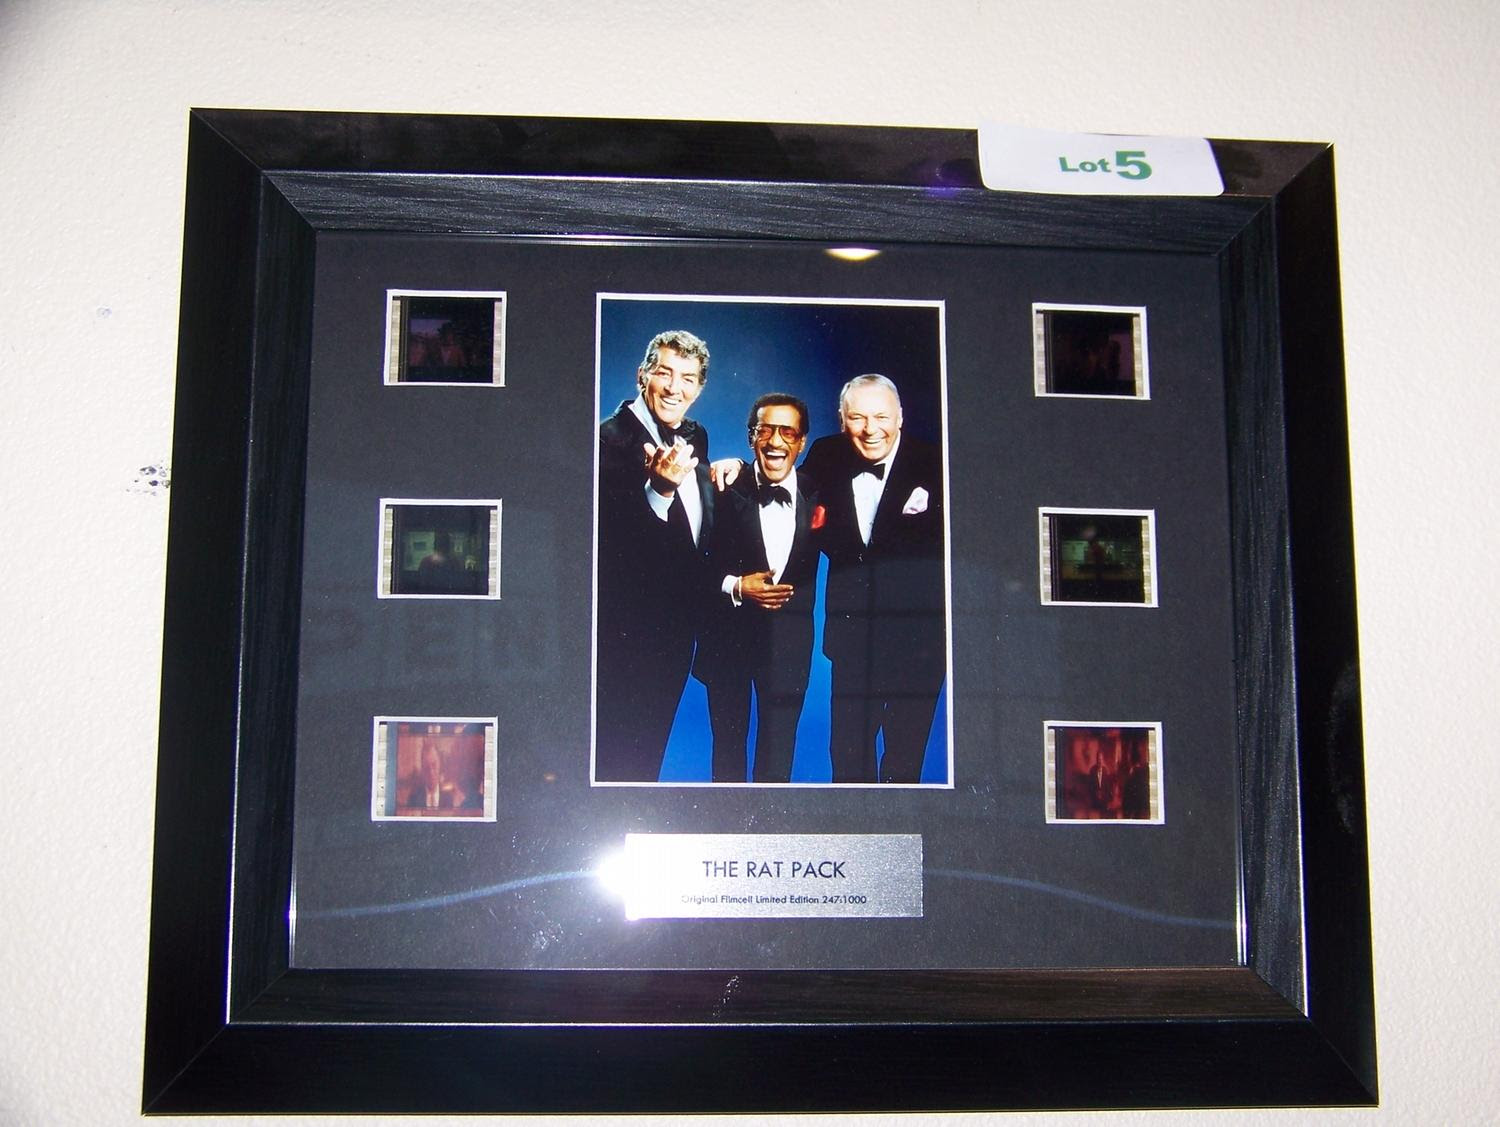 The Rat Pack Original Film Cell Limited Edition 2471000 Framed